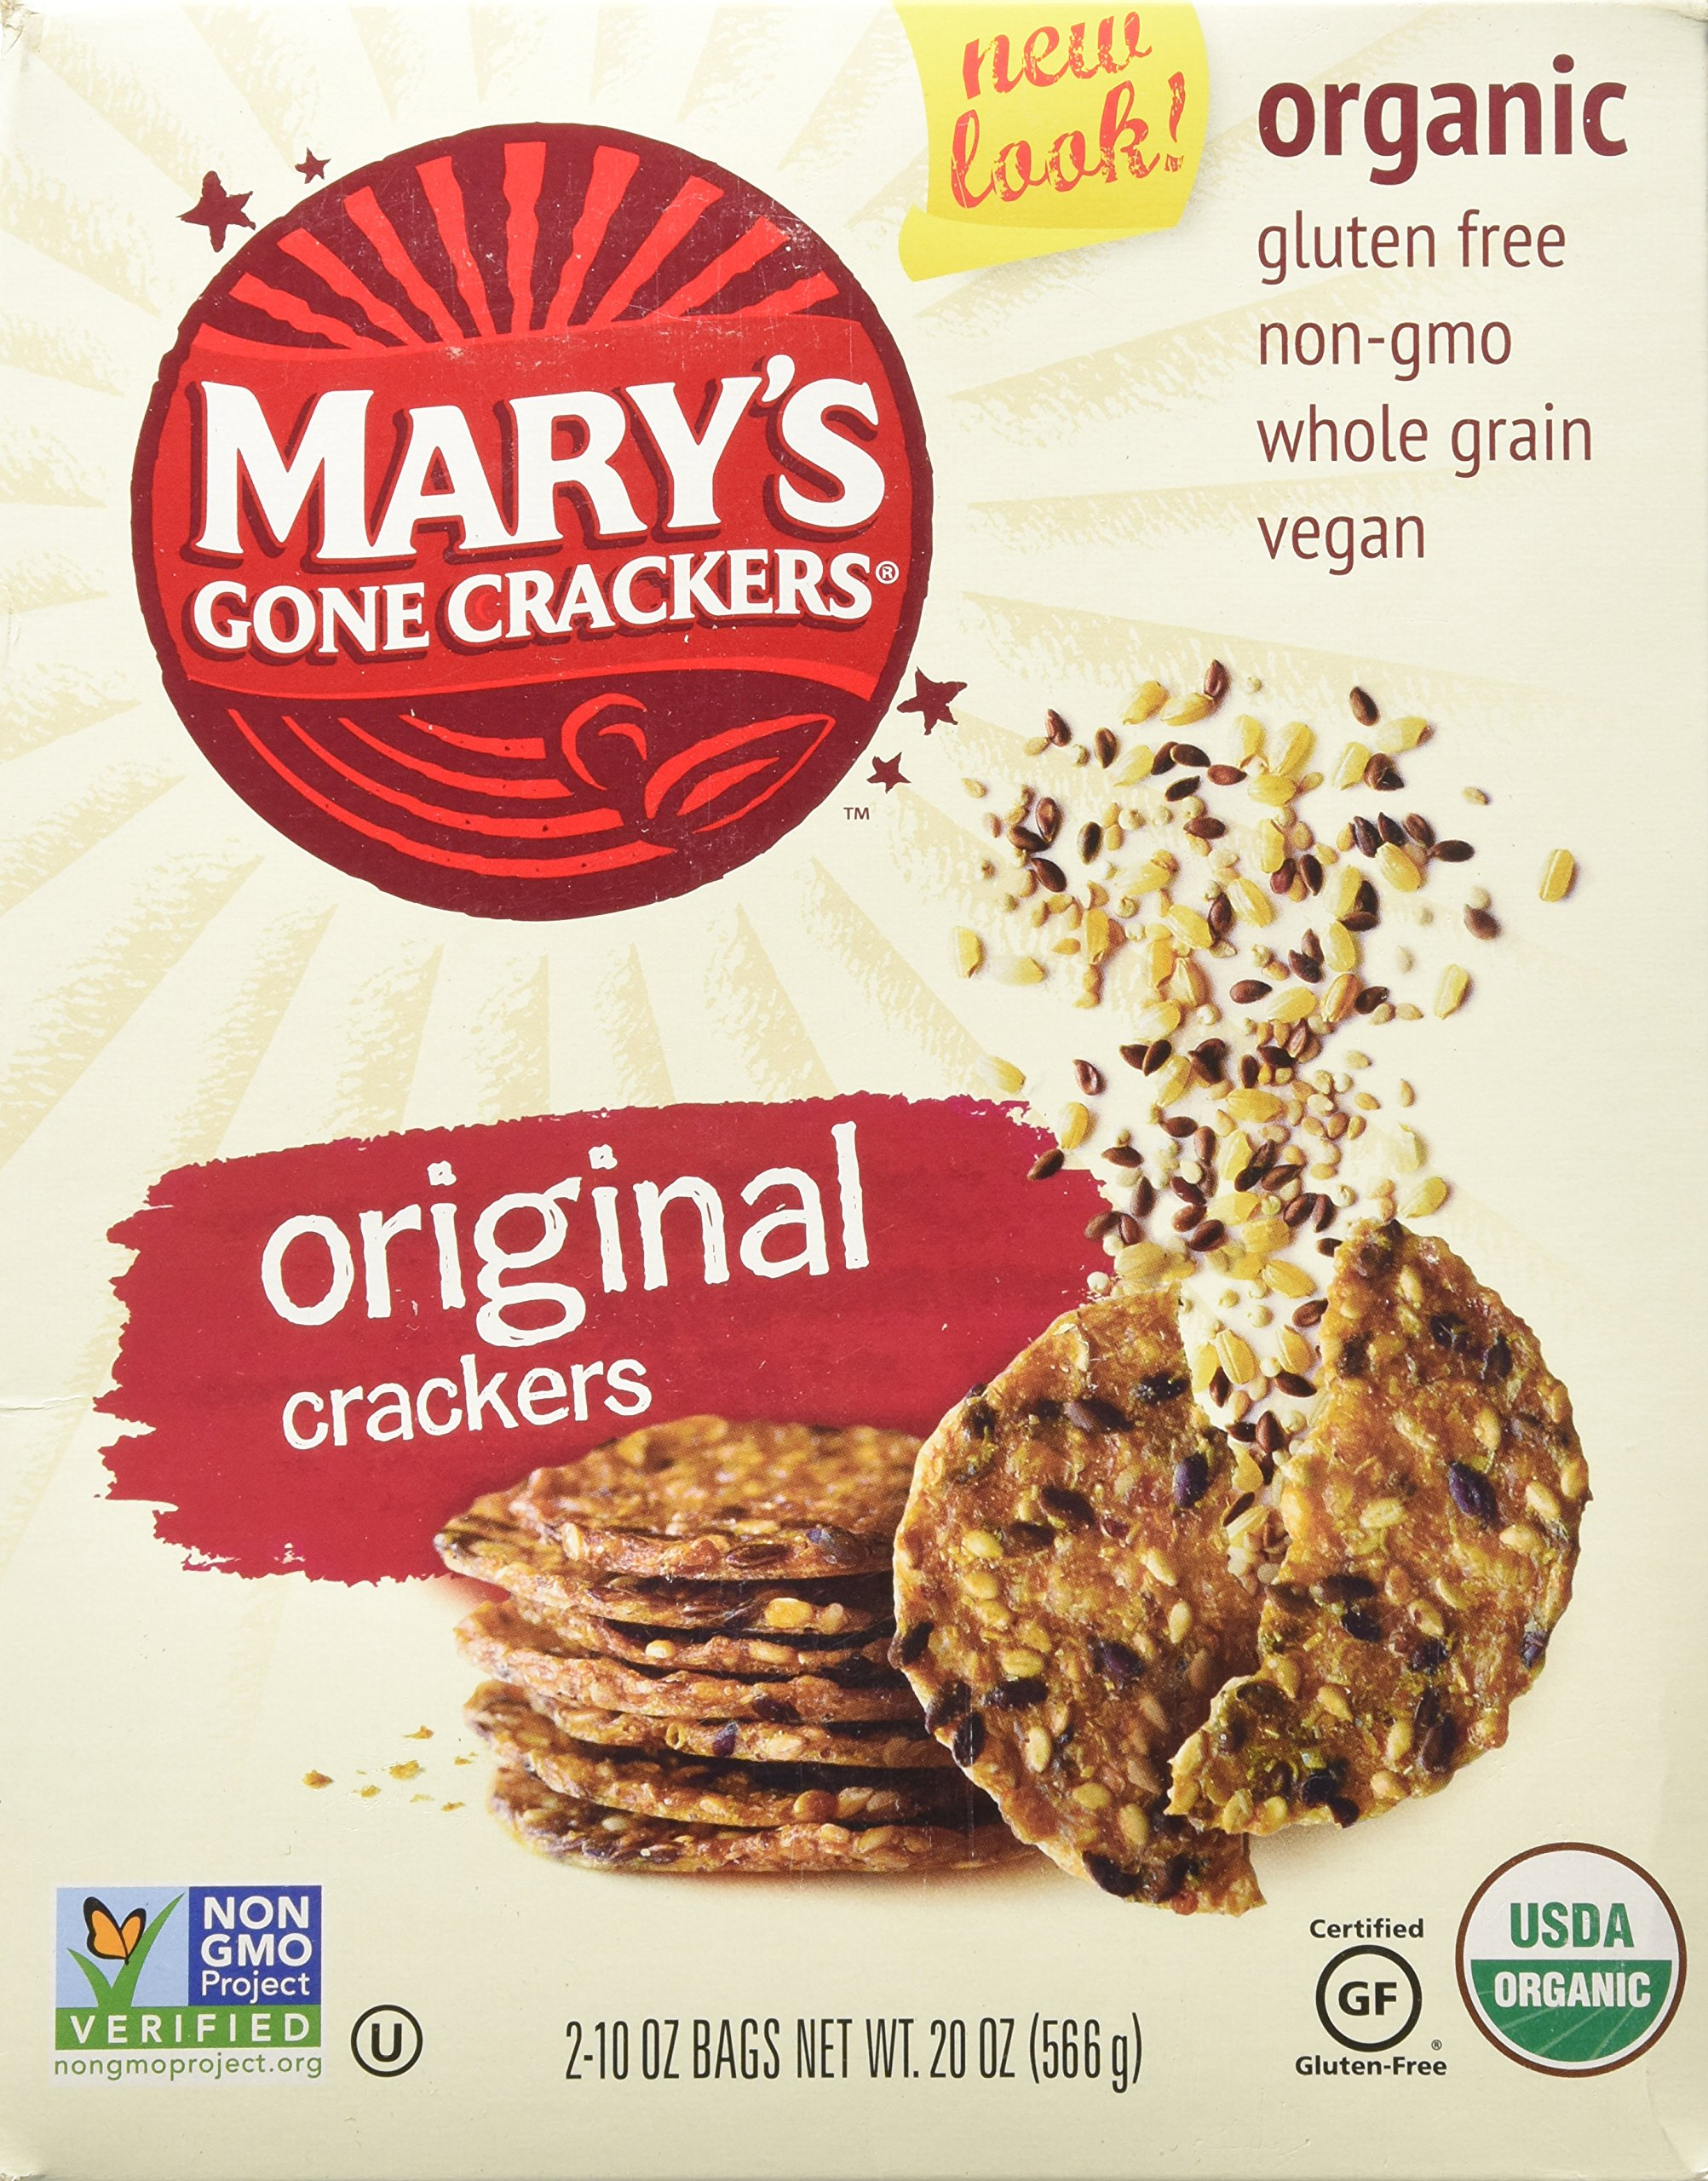 Organic Mary's Gone Crackers, 10 oz bag - 2 ct by Mary's Gone